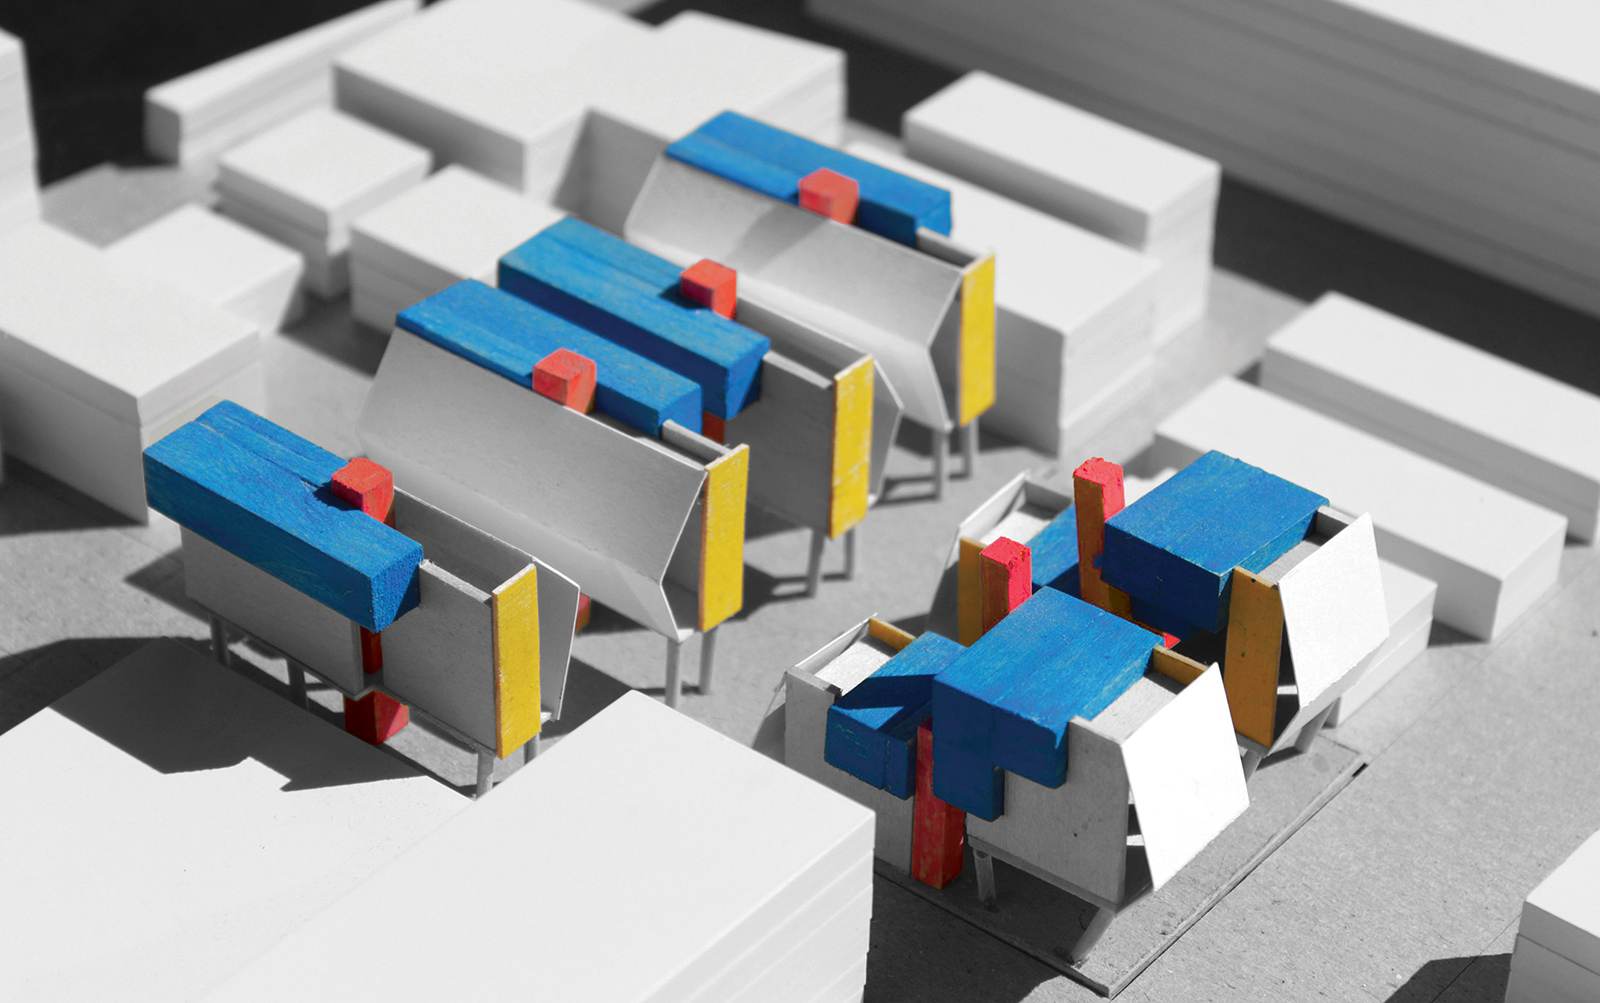 Model photo of the proposed massing scheme for QTCT housing diagrammed with color coded material concepts